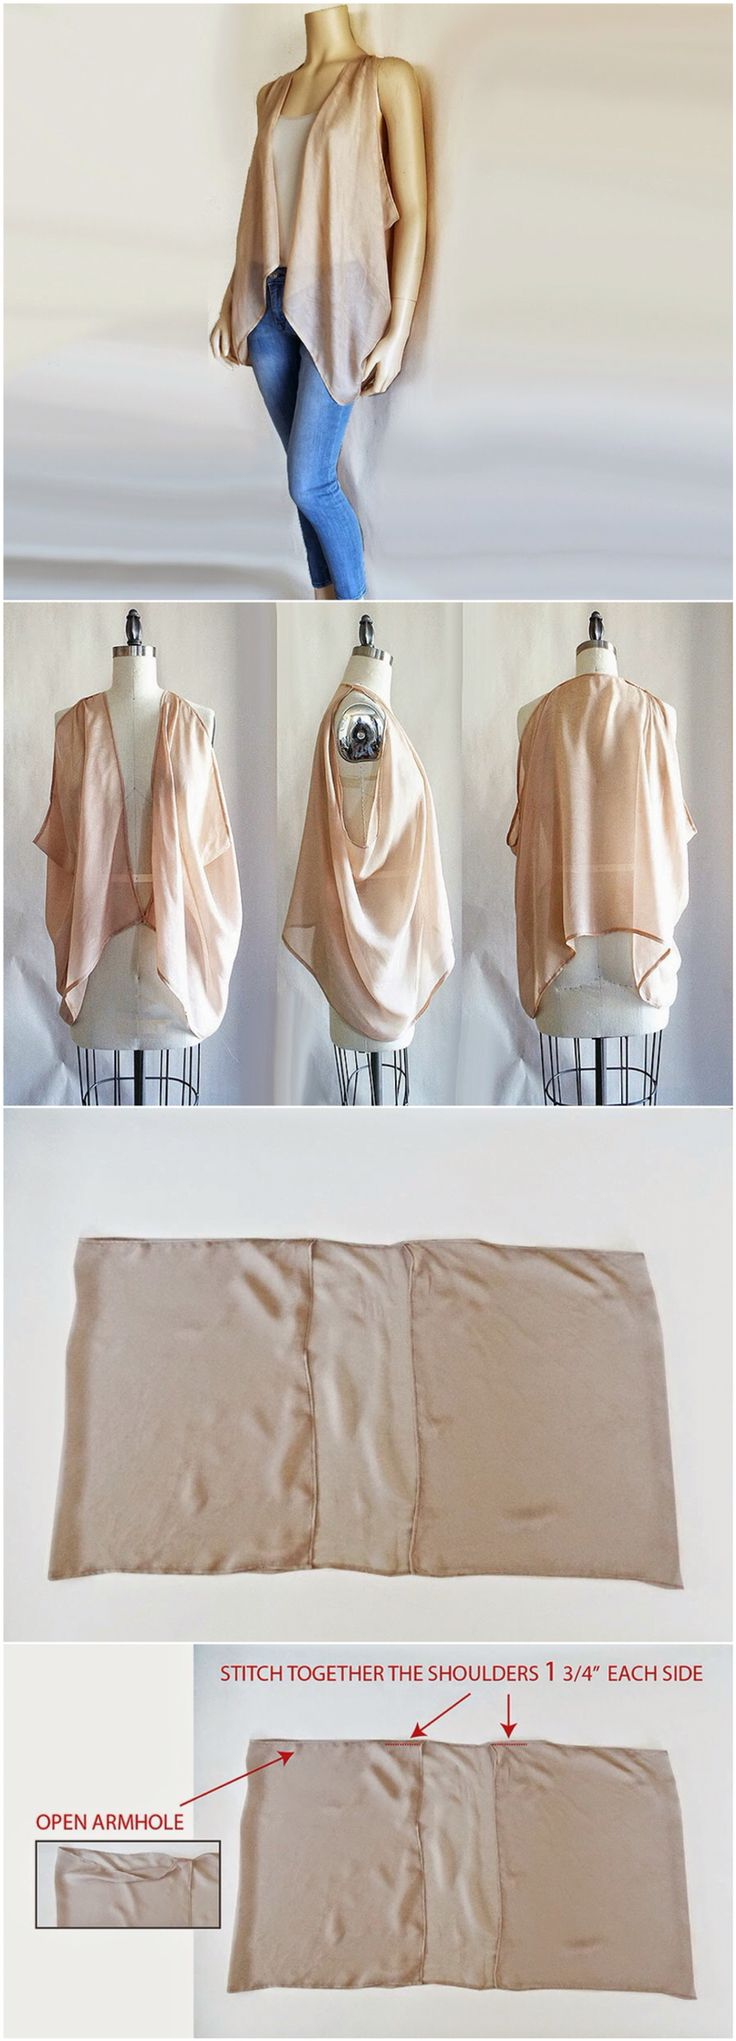 Vest from Scarf Upcycled